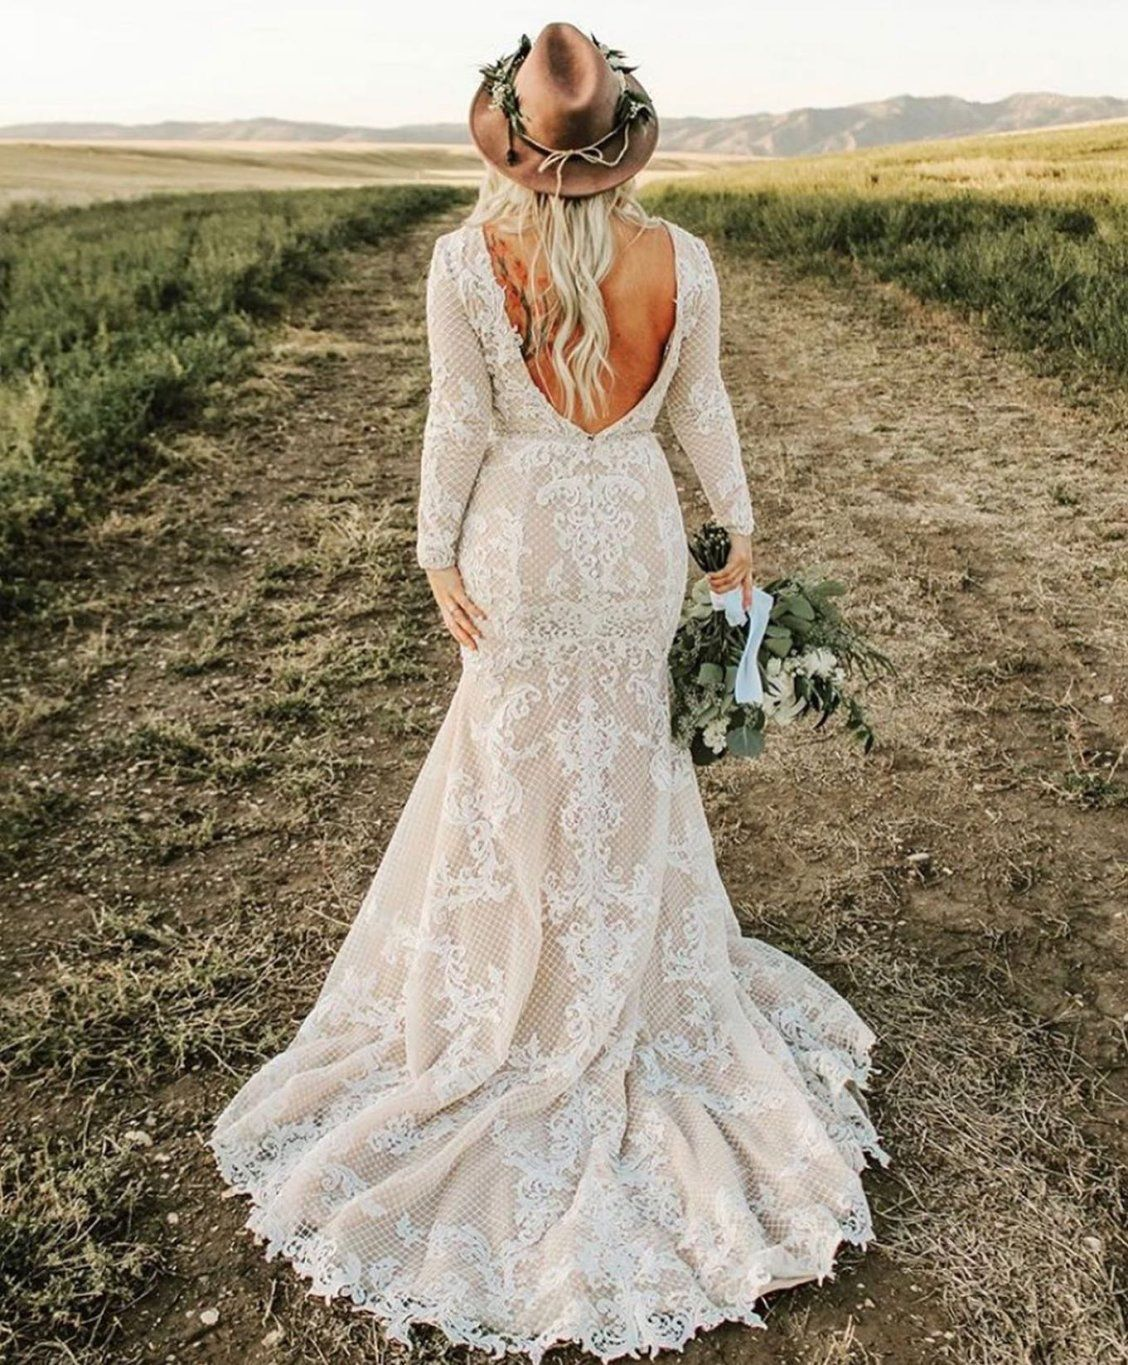 Deirdre By Maggie Sottero Wedding Dresses And Accessories Rustic Wedding Dress Lace Lace Wedding Dress Country Wedding Dress Long Sleeve [ 3328 x 1477 Pixel ]